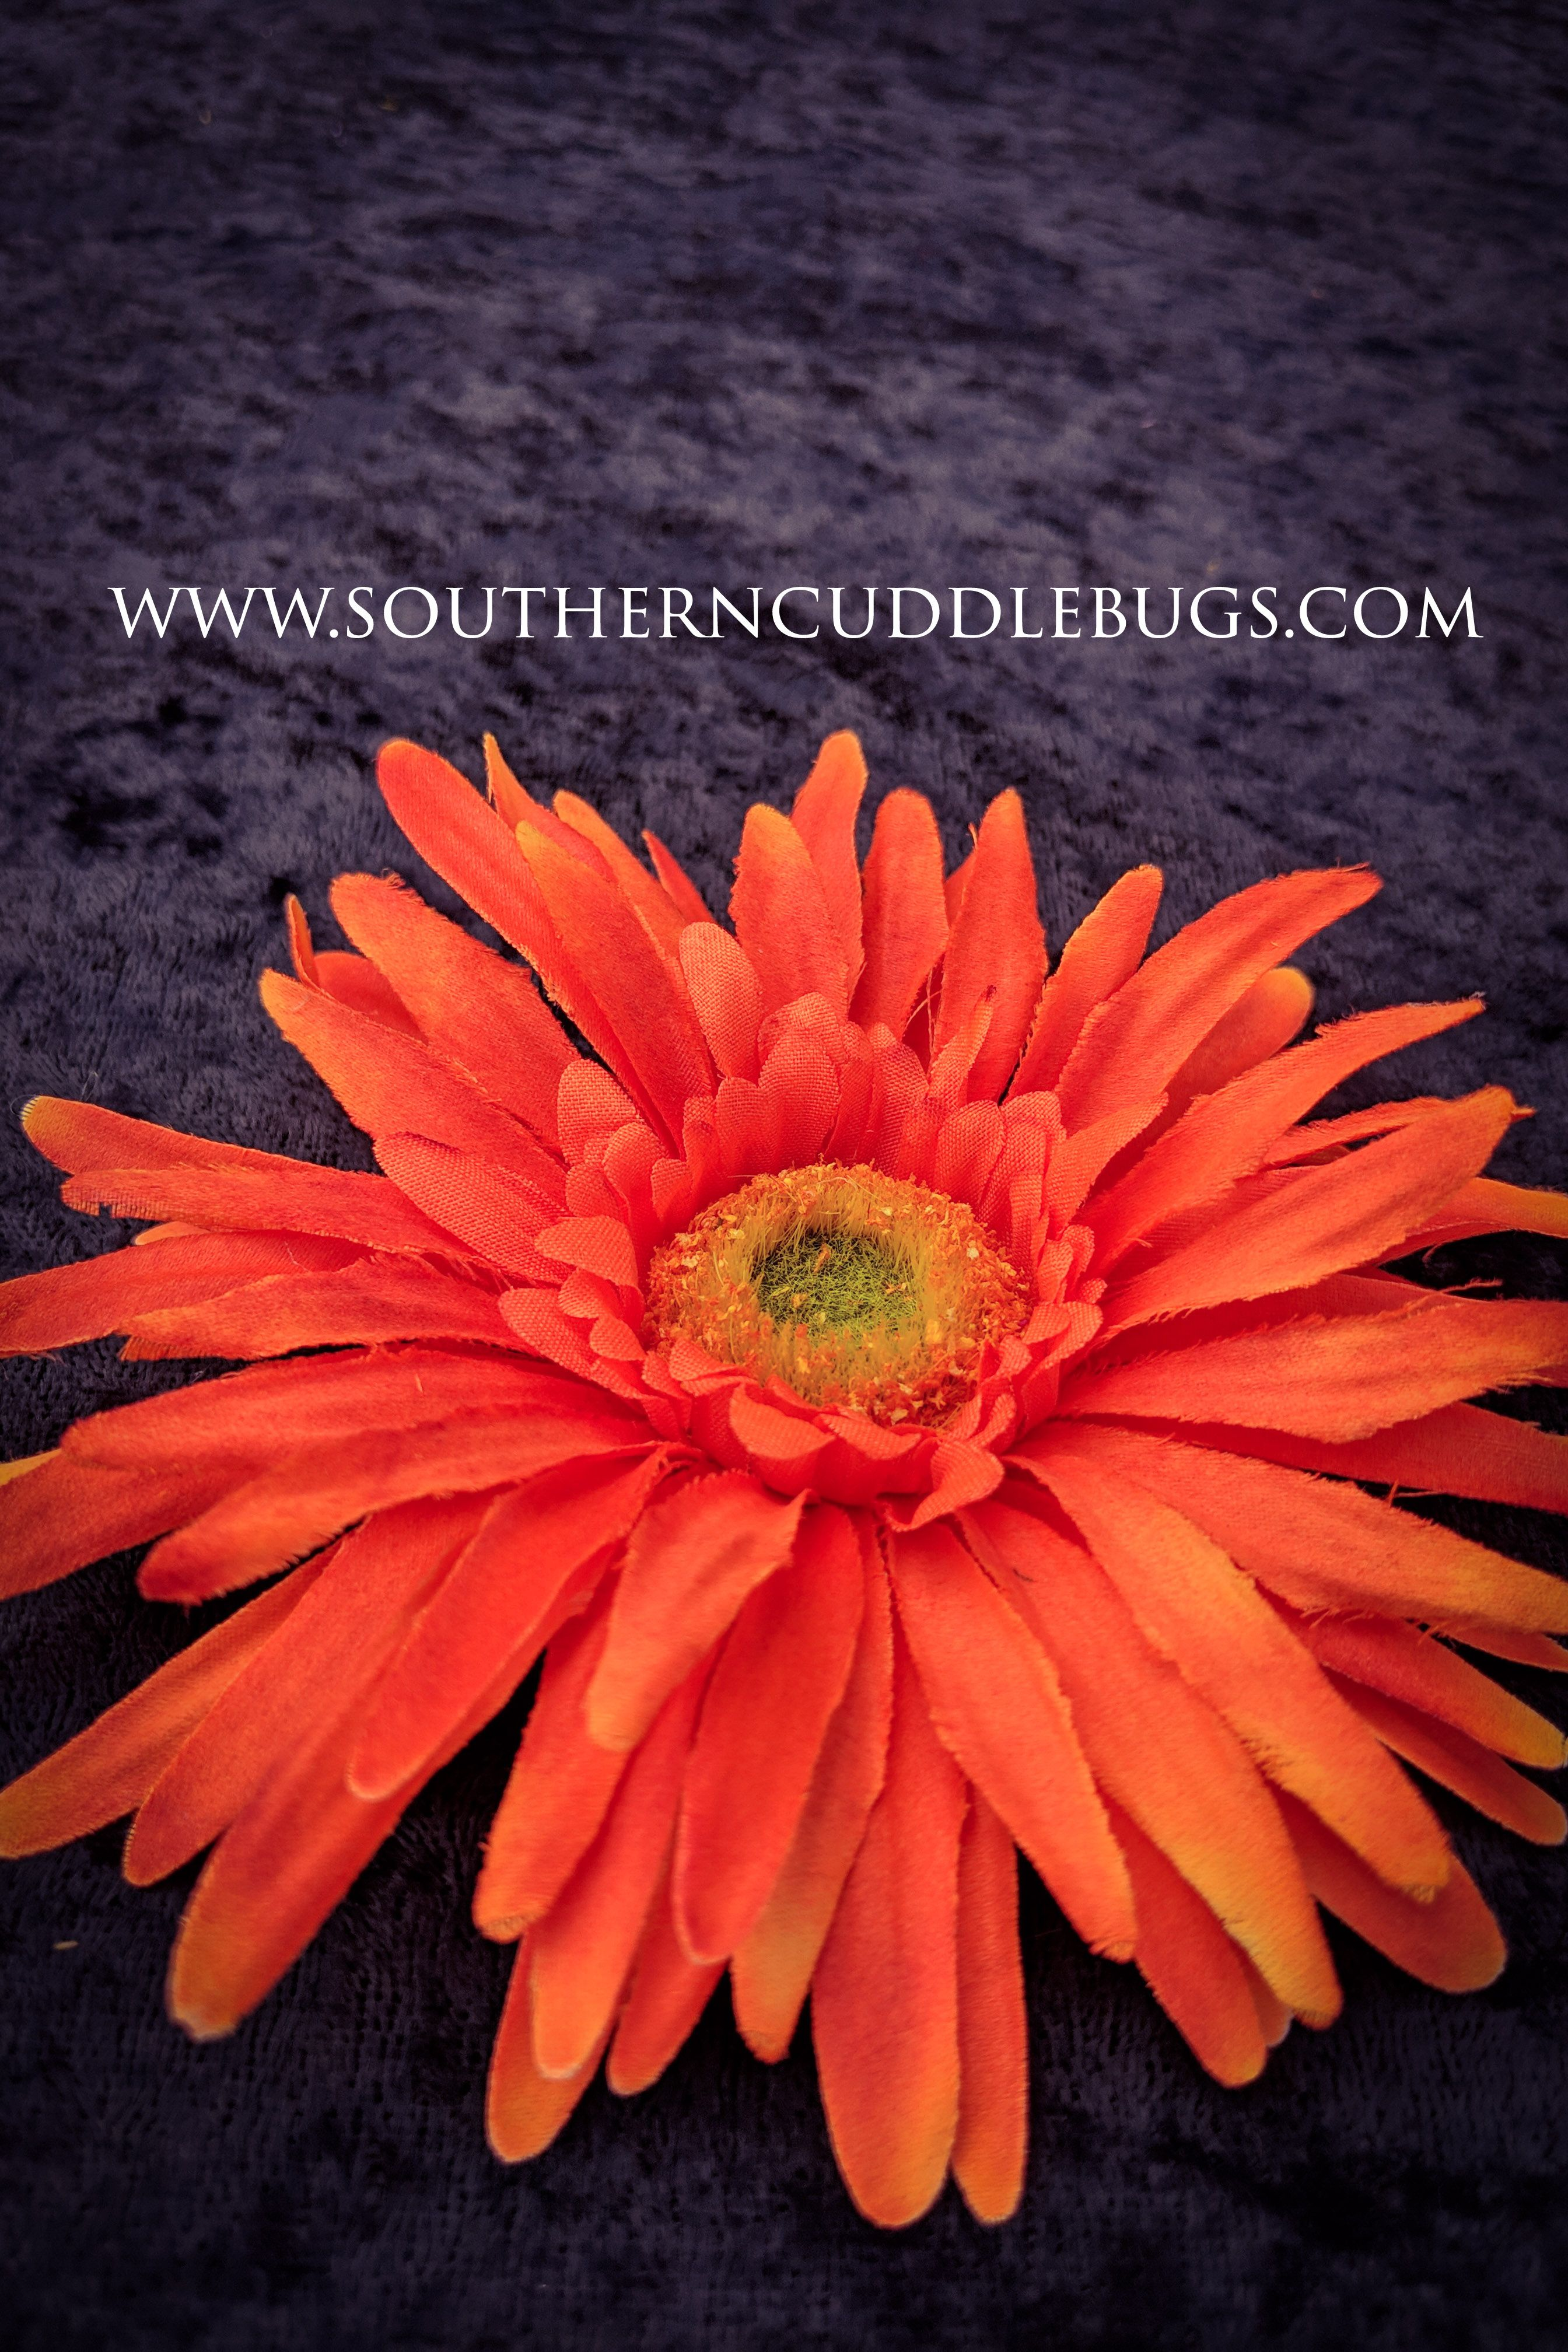 The Orange Thin Petal Daisy Magnet Is Another Beautiful